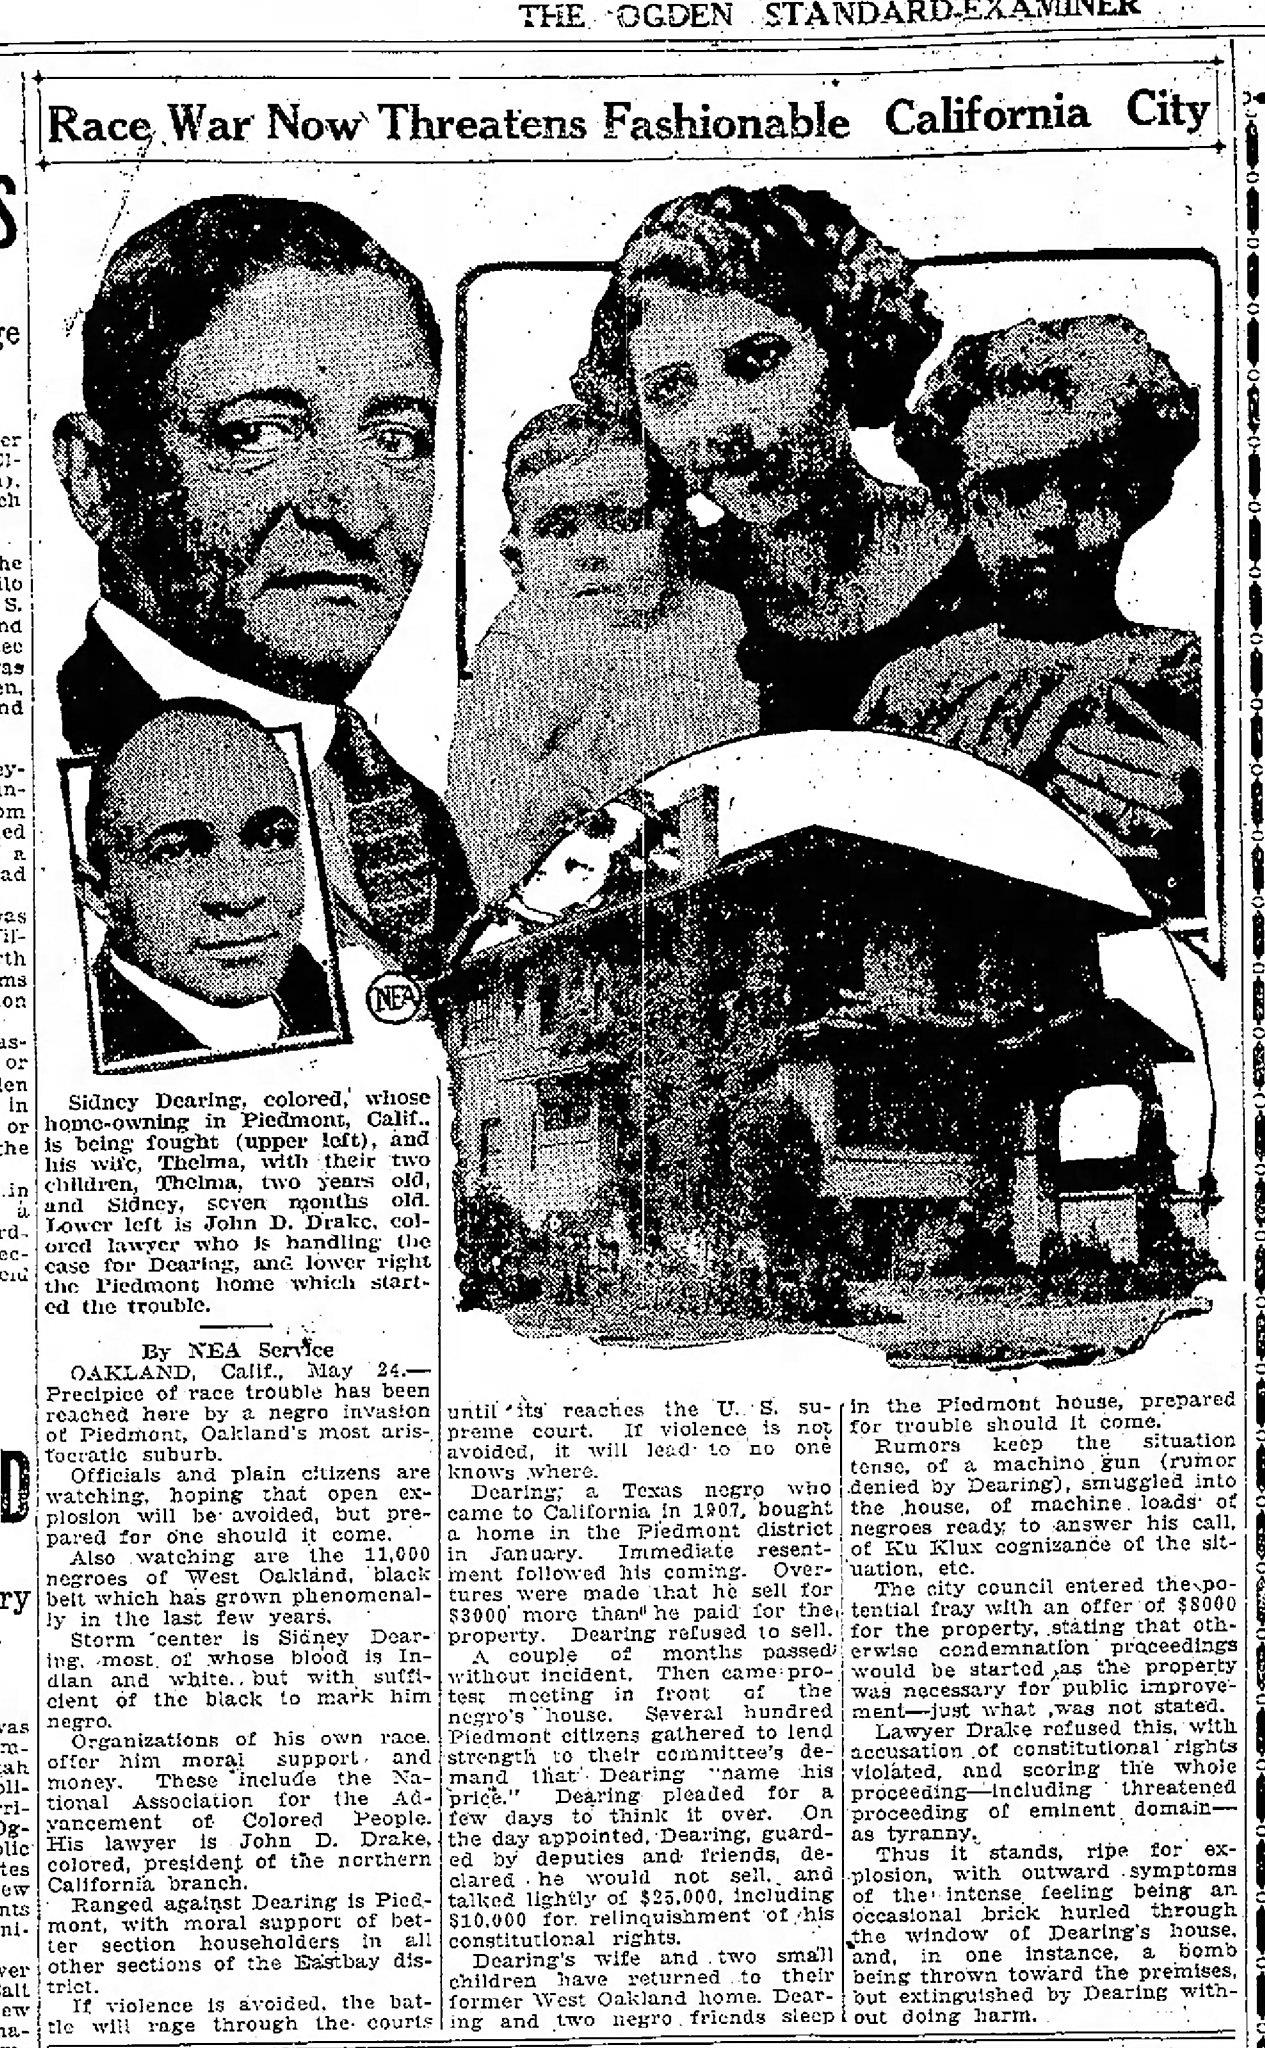 An affluent East Bay city chased out its first Black homeowner a century ago - and still hasn't atoned